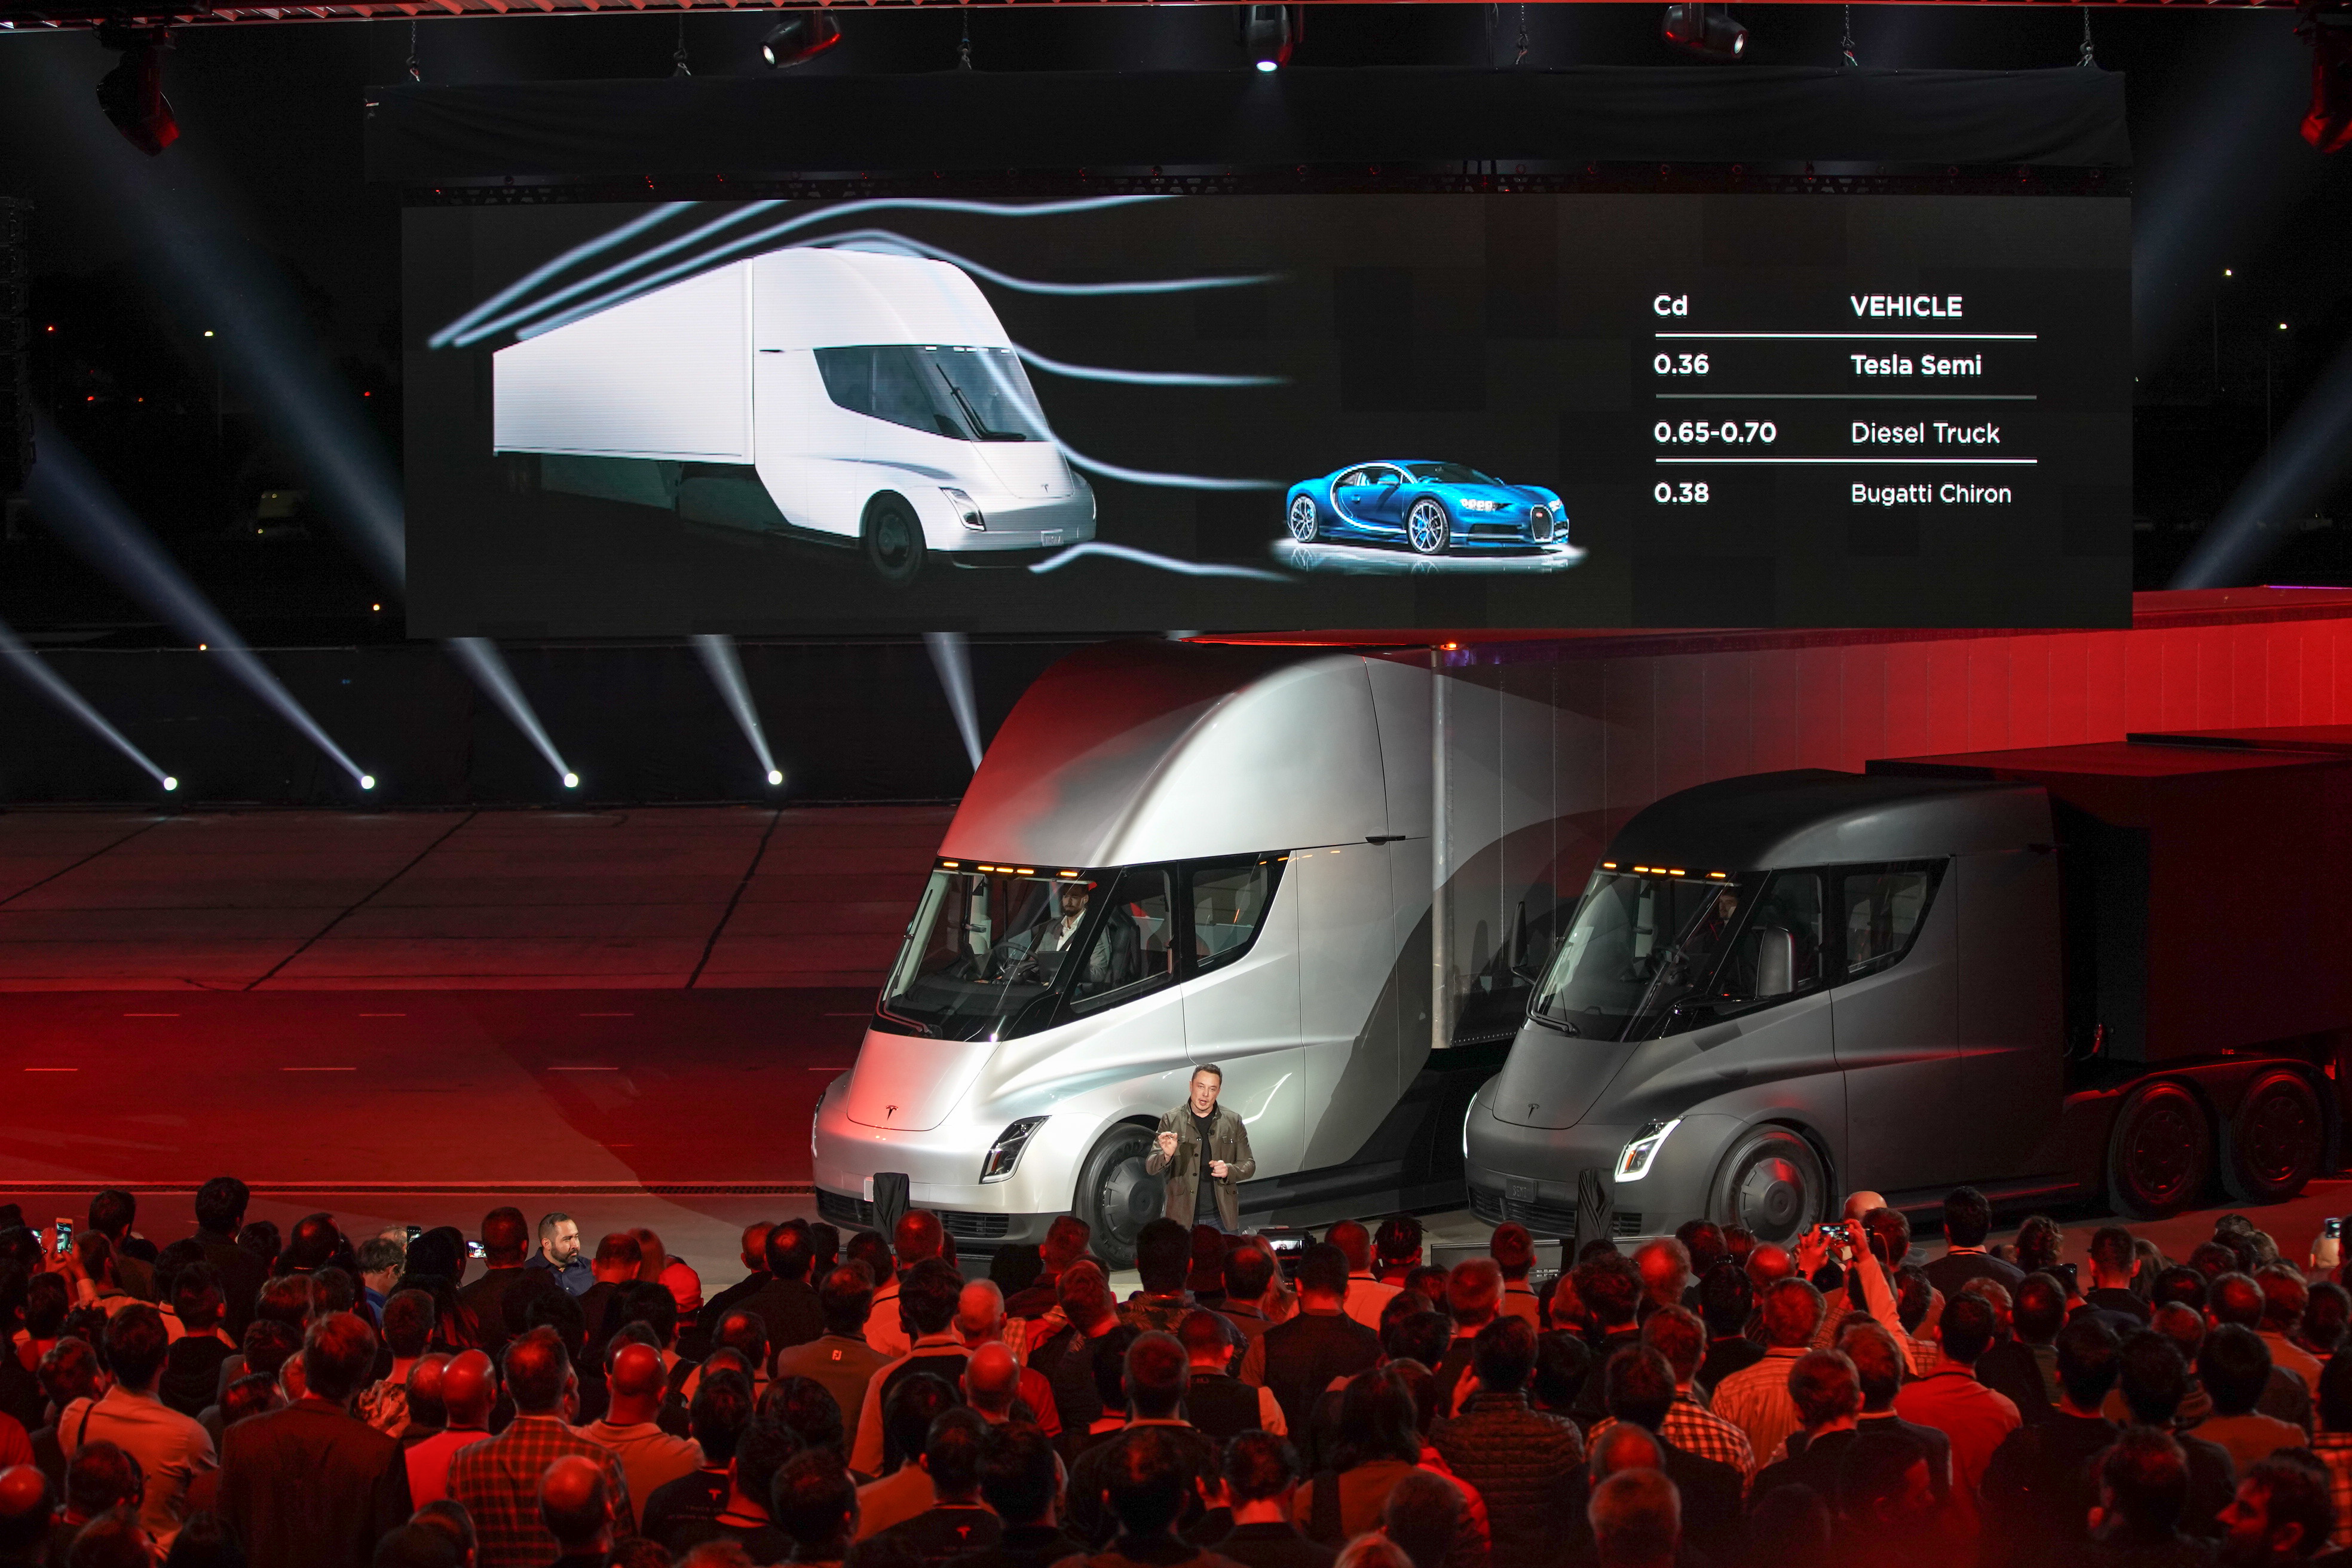 tesla-semi-event-coefficient-drag